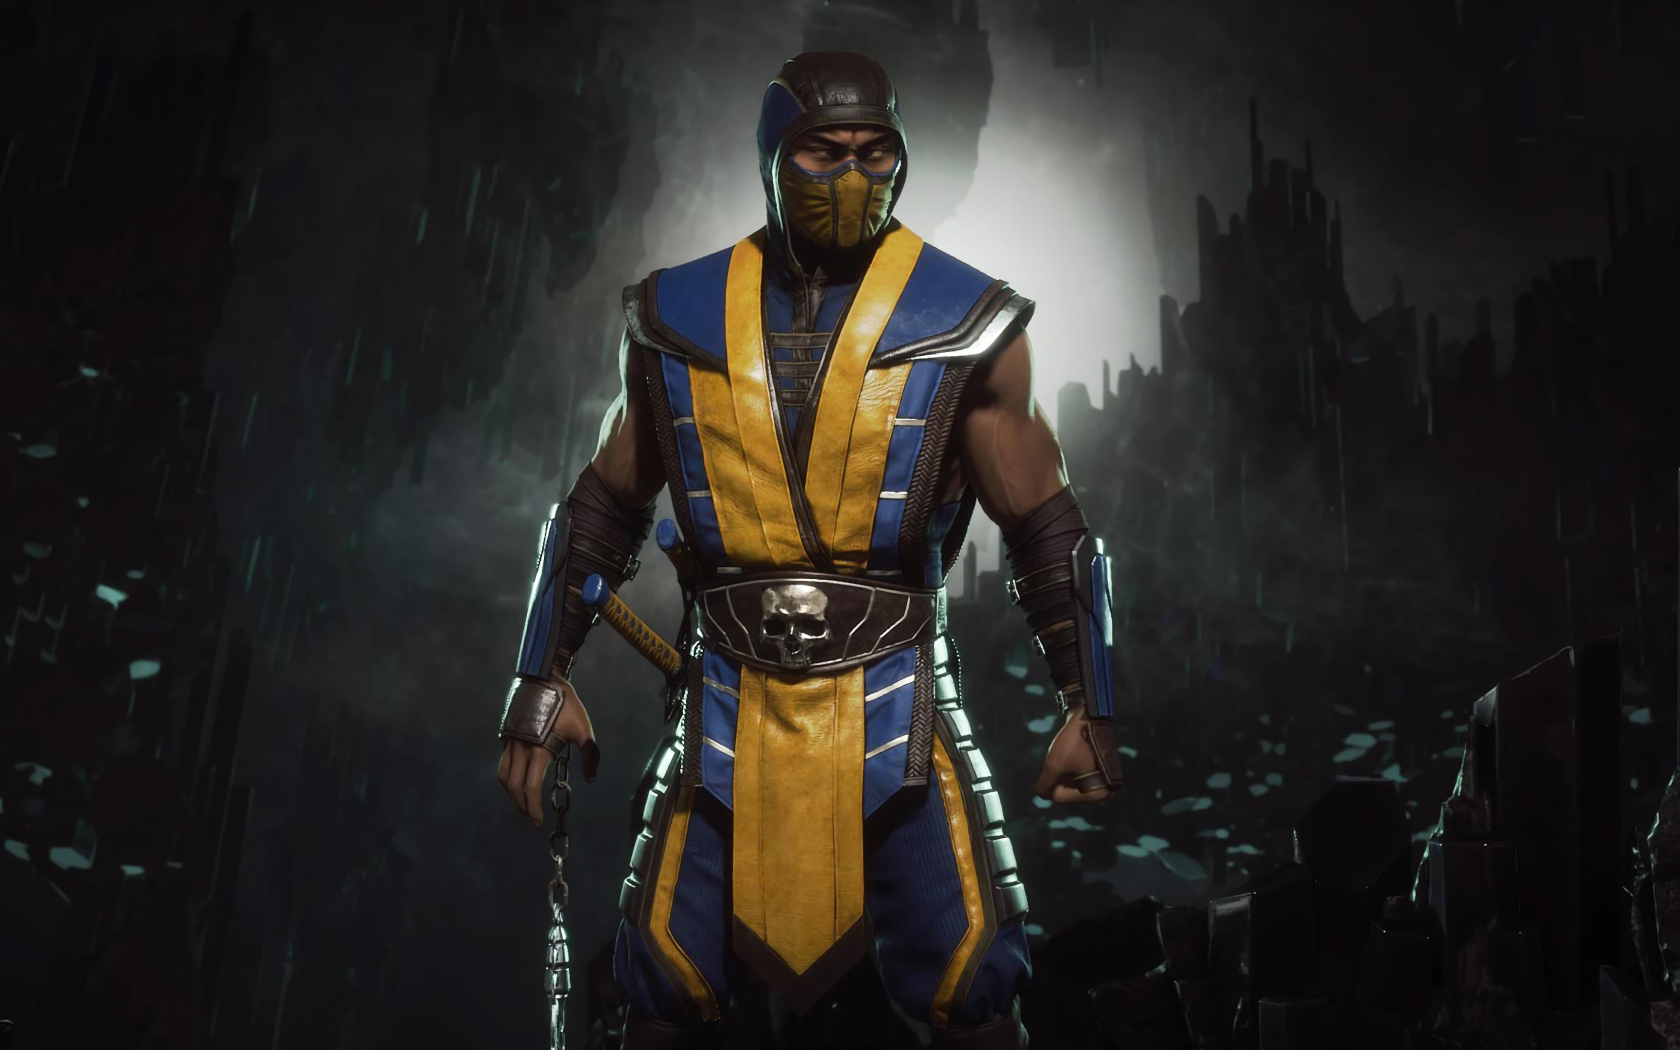 1680x1050 Mortal Kombat 11 Scorpion 4k 1680x1050 Resolution Image